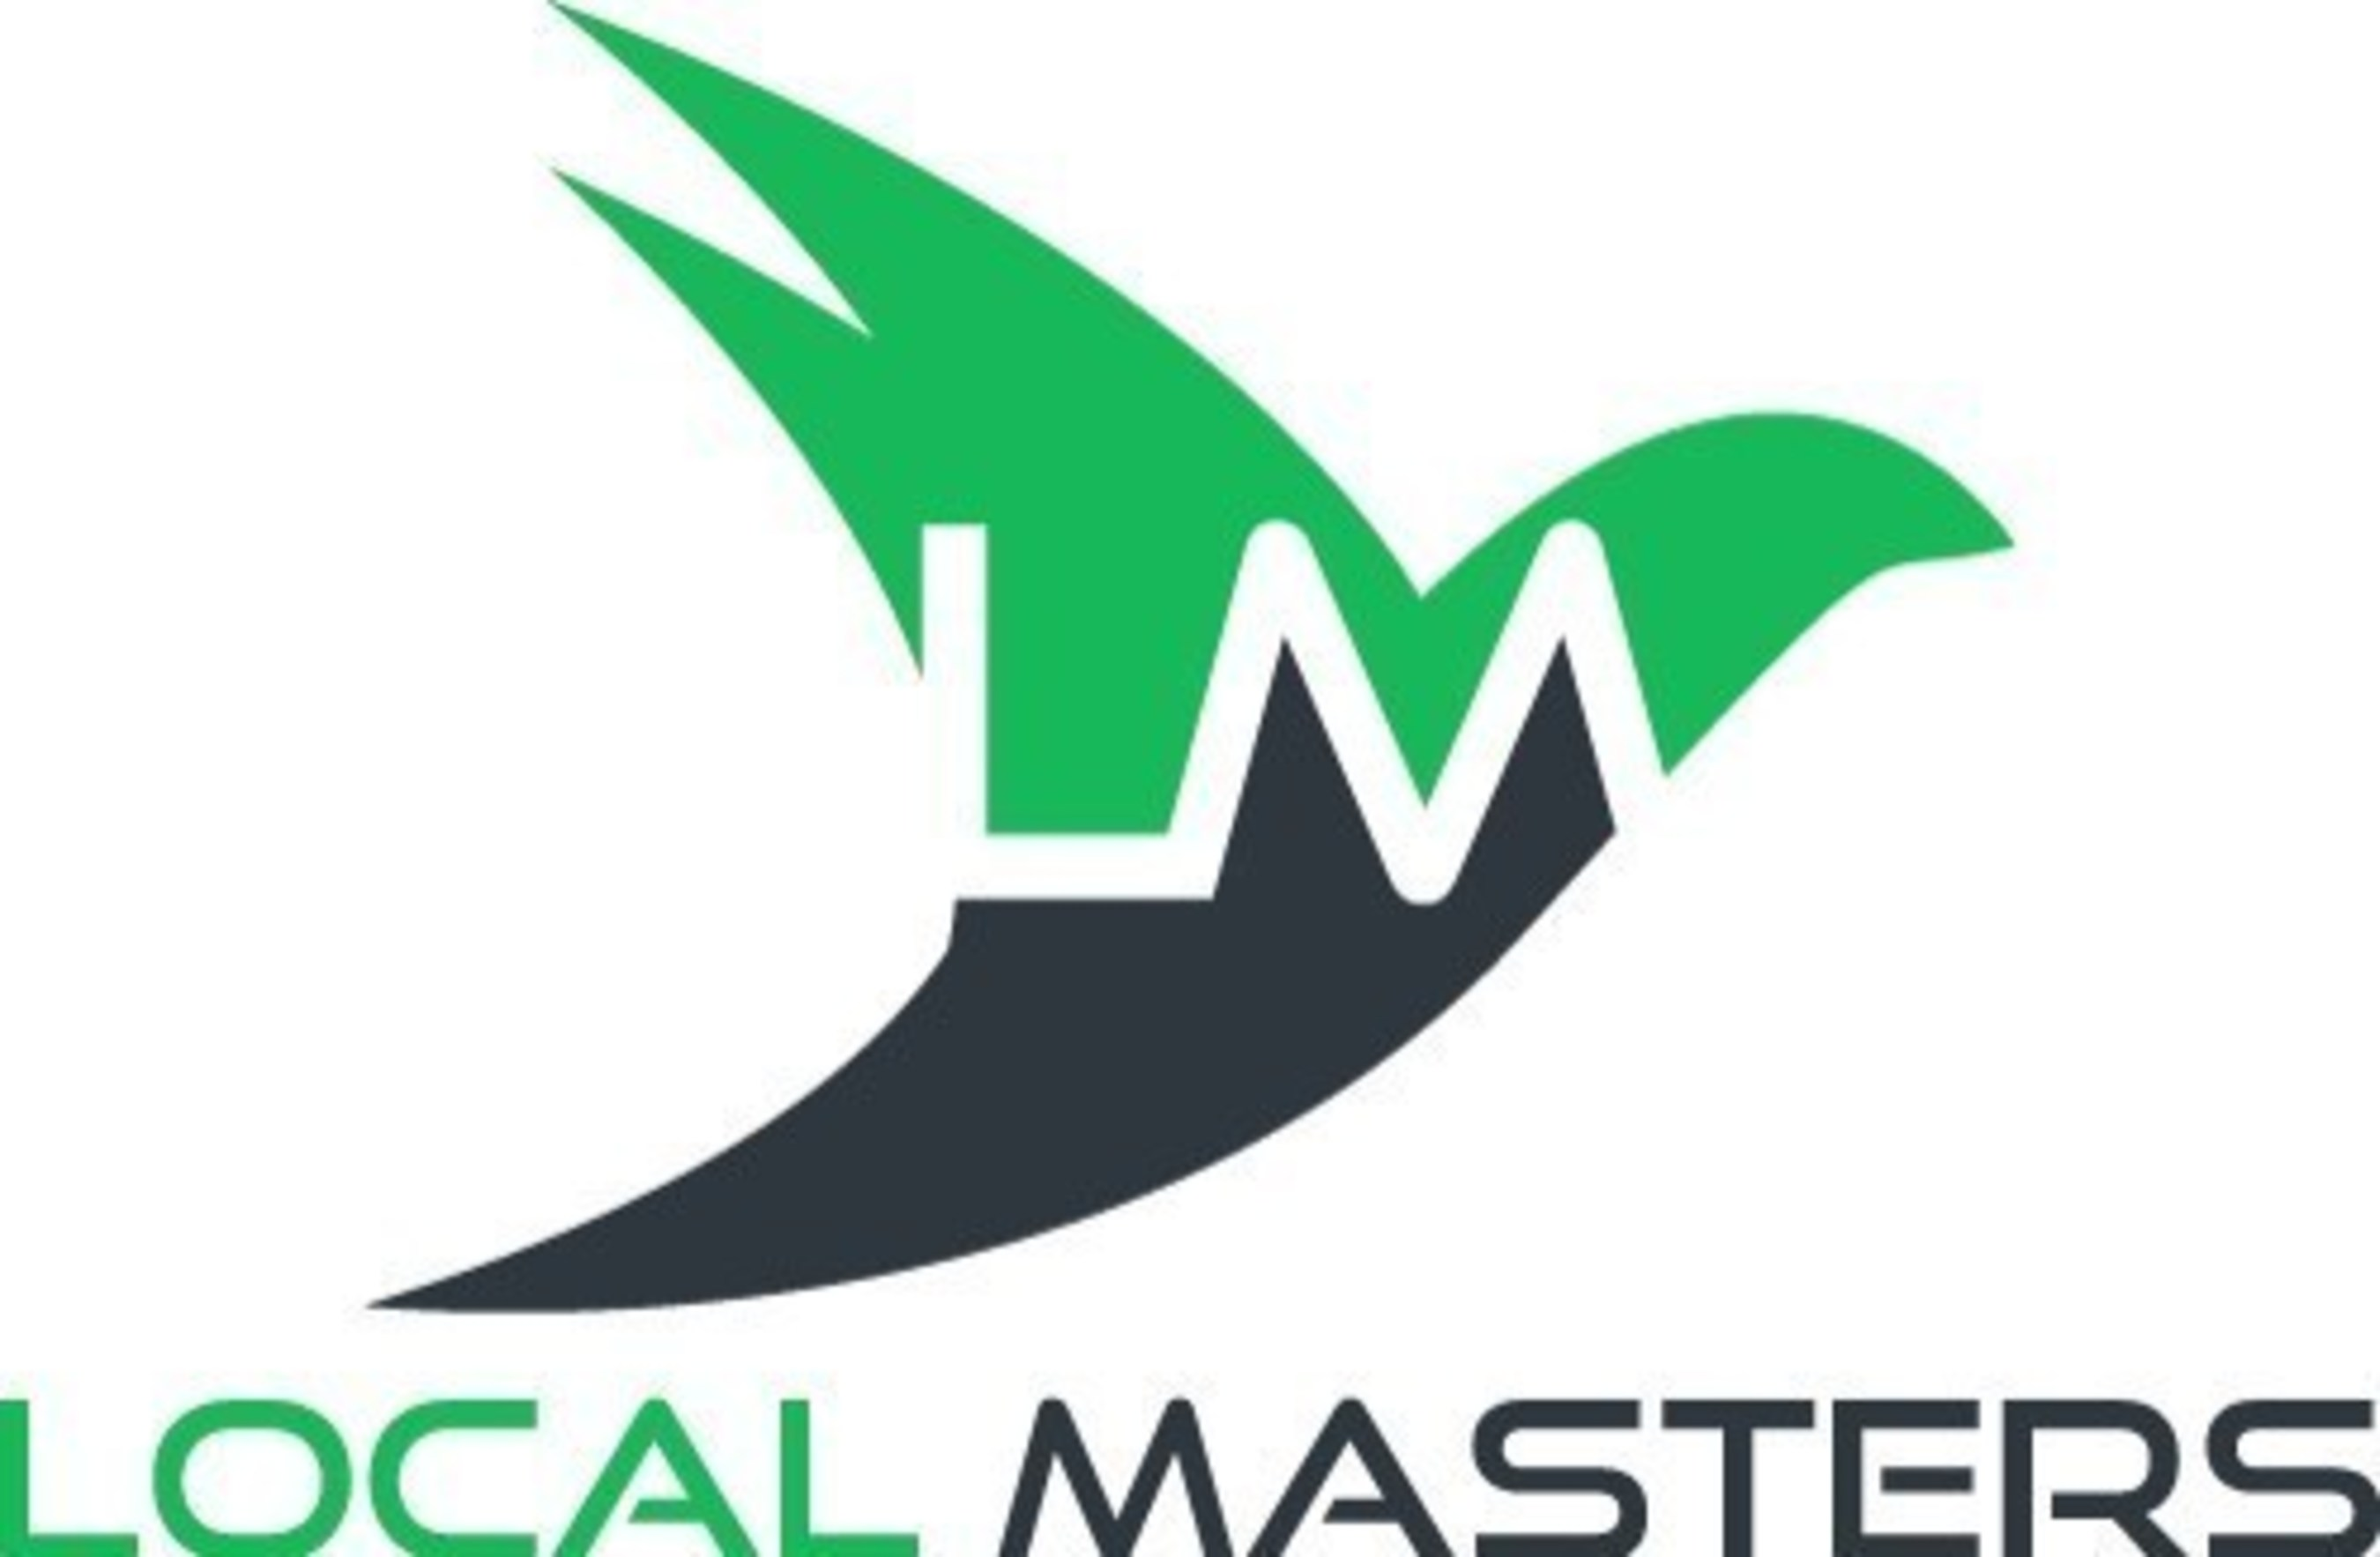 Local Masters Offers an Innovative New Way to Build a Branded Network of Partners All Across the